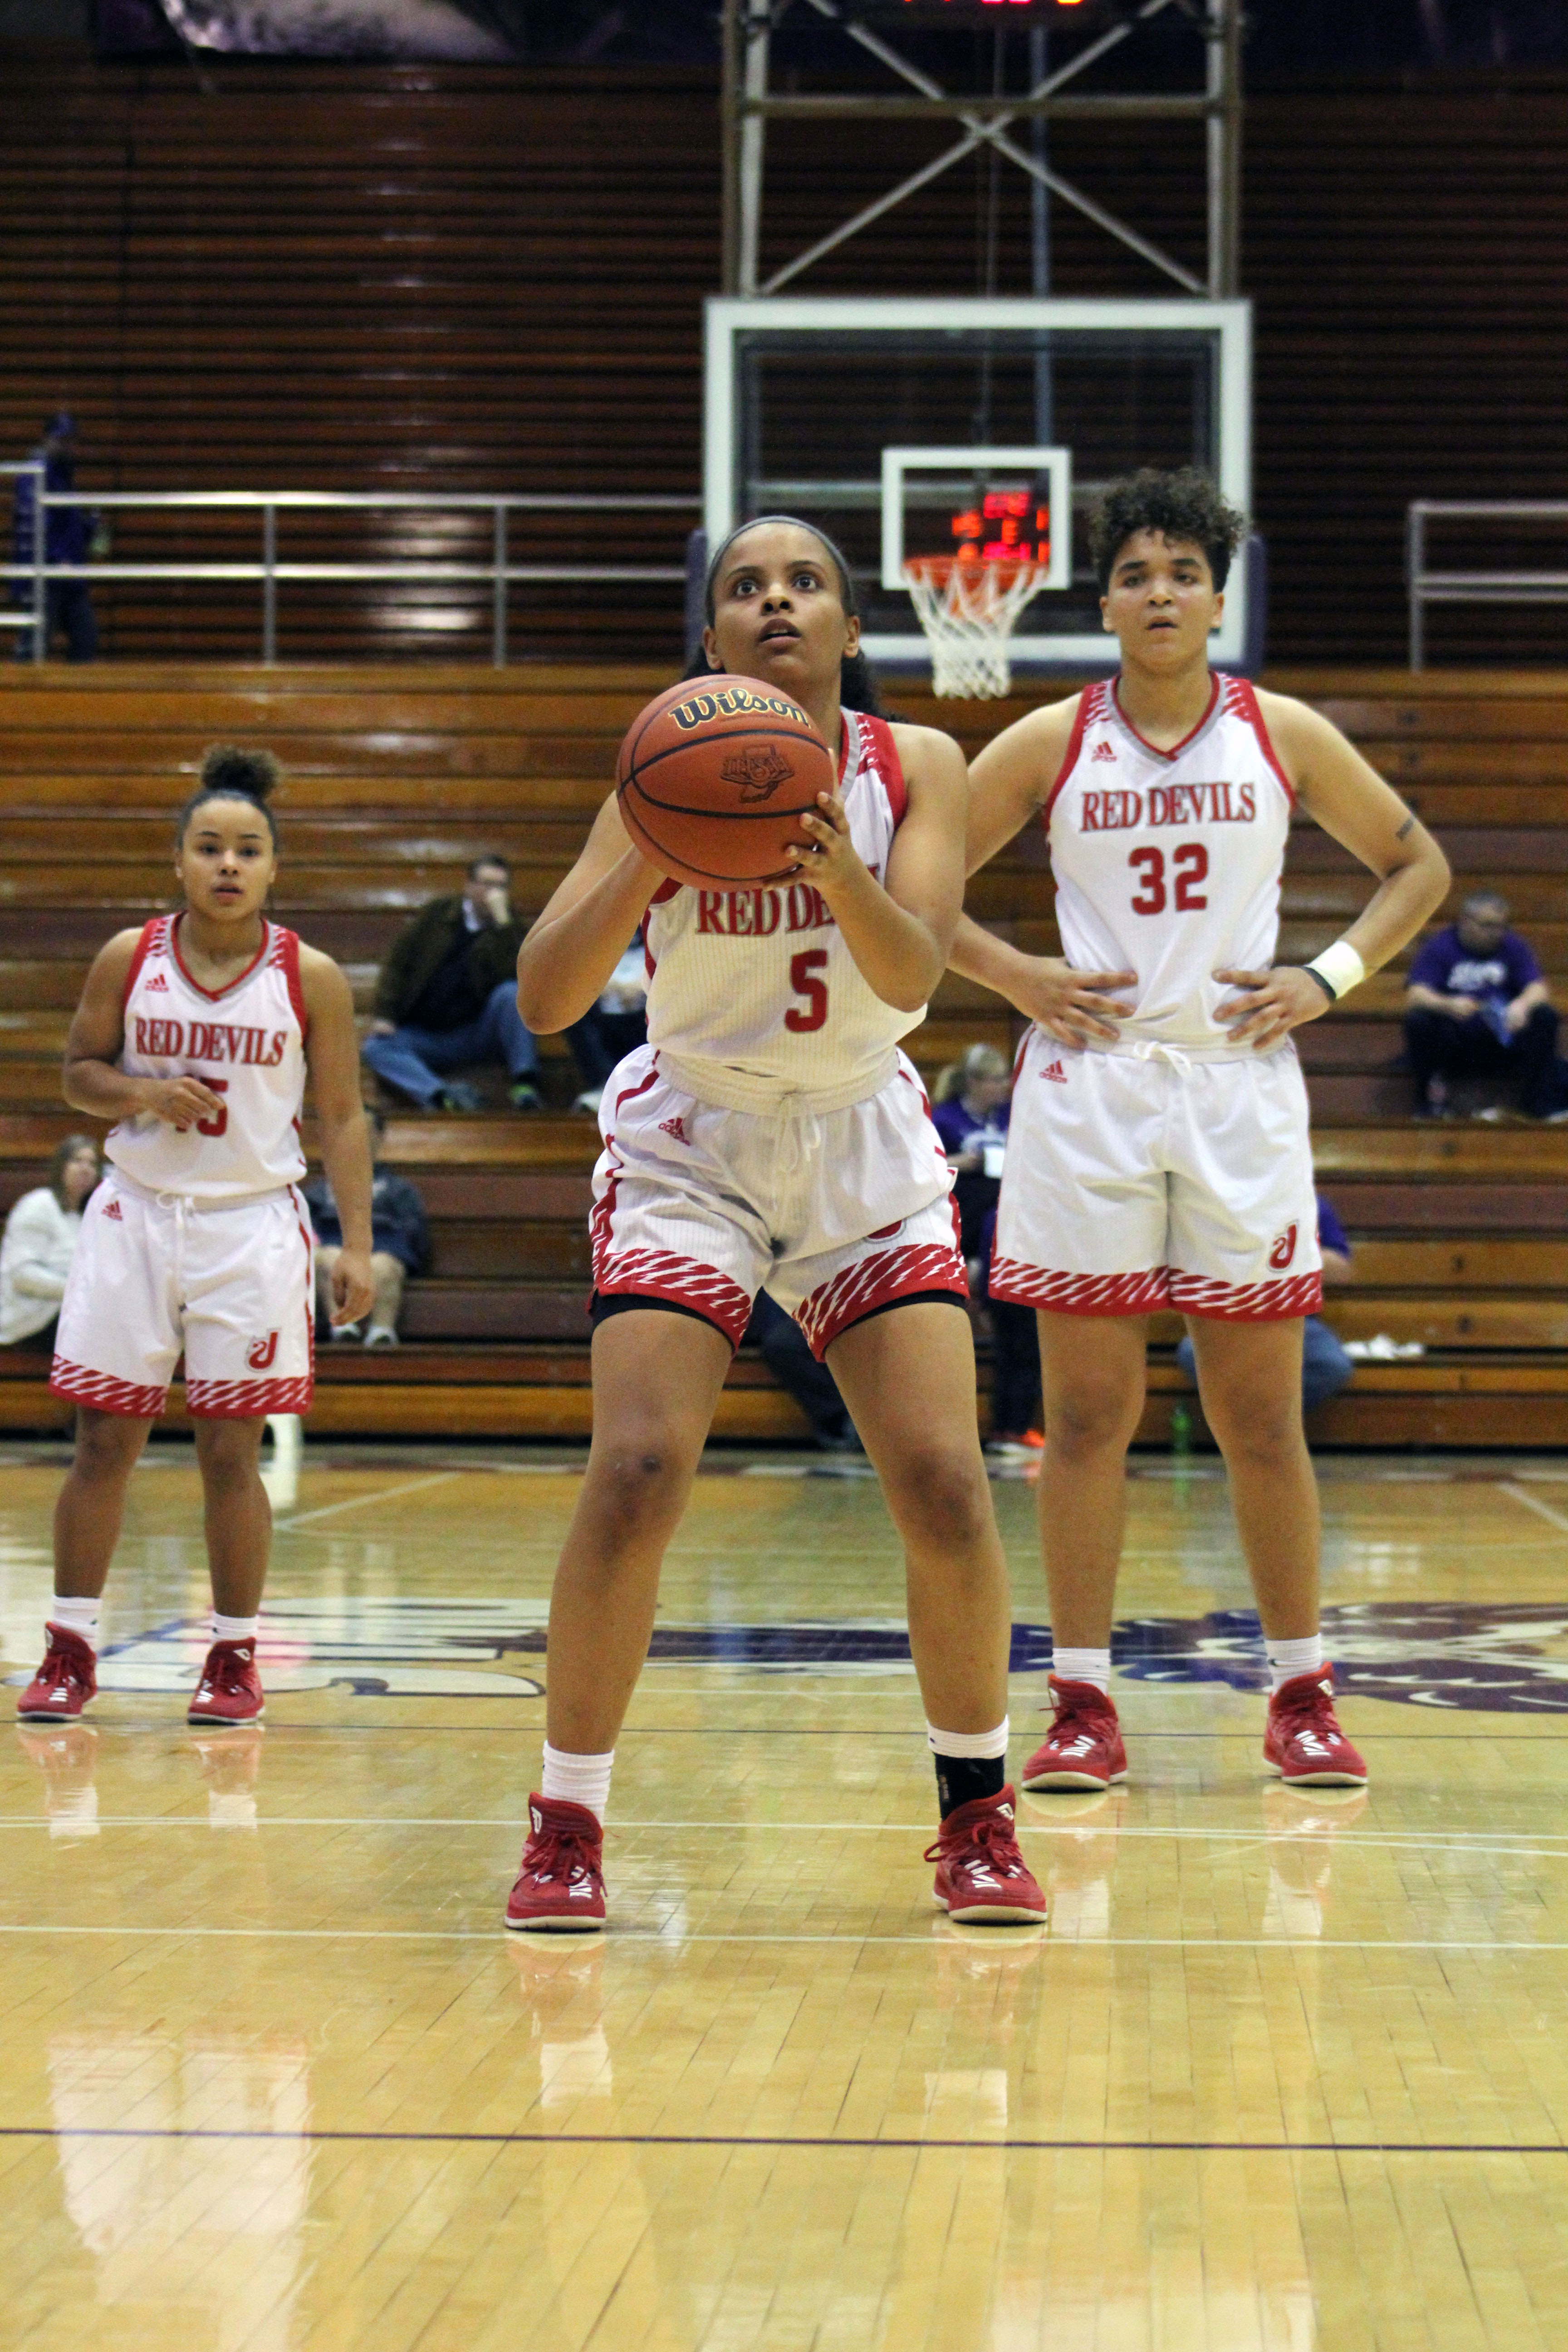 Lady Red Devils Take Down Seymour in Sectional Opener